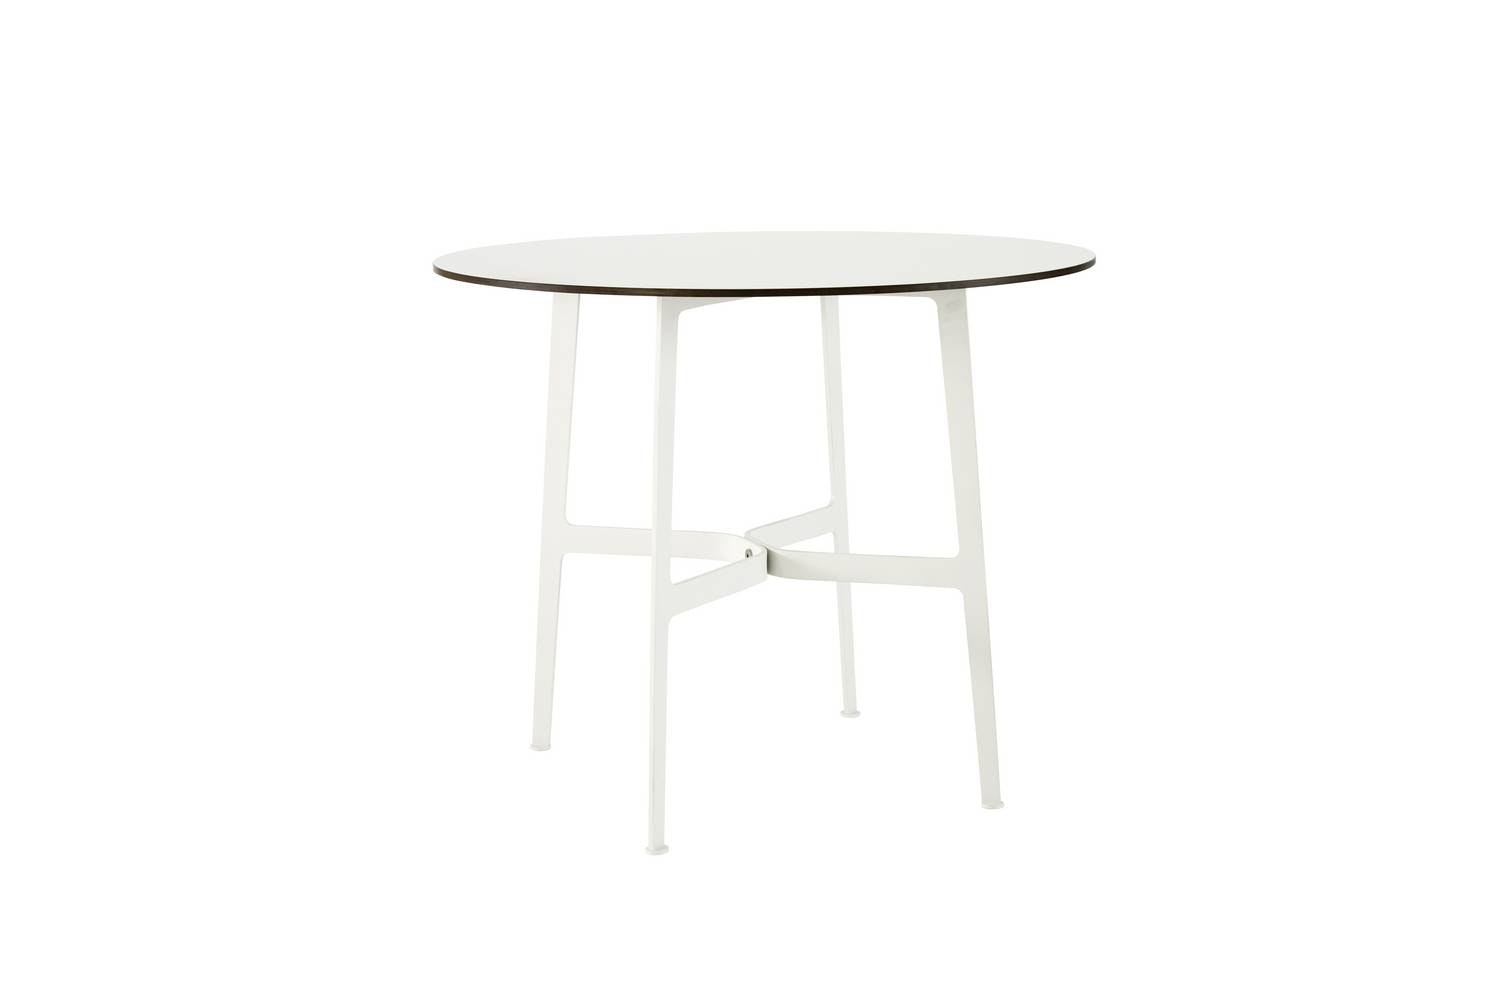 Eileen Circular Table by Tom Fereday for SP01